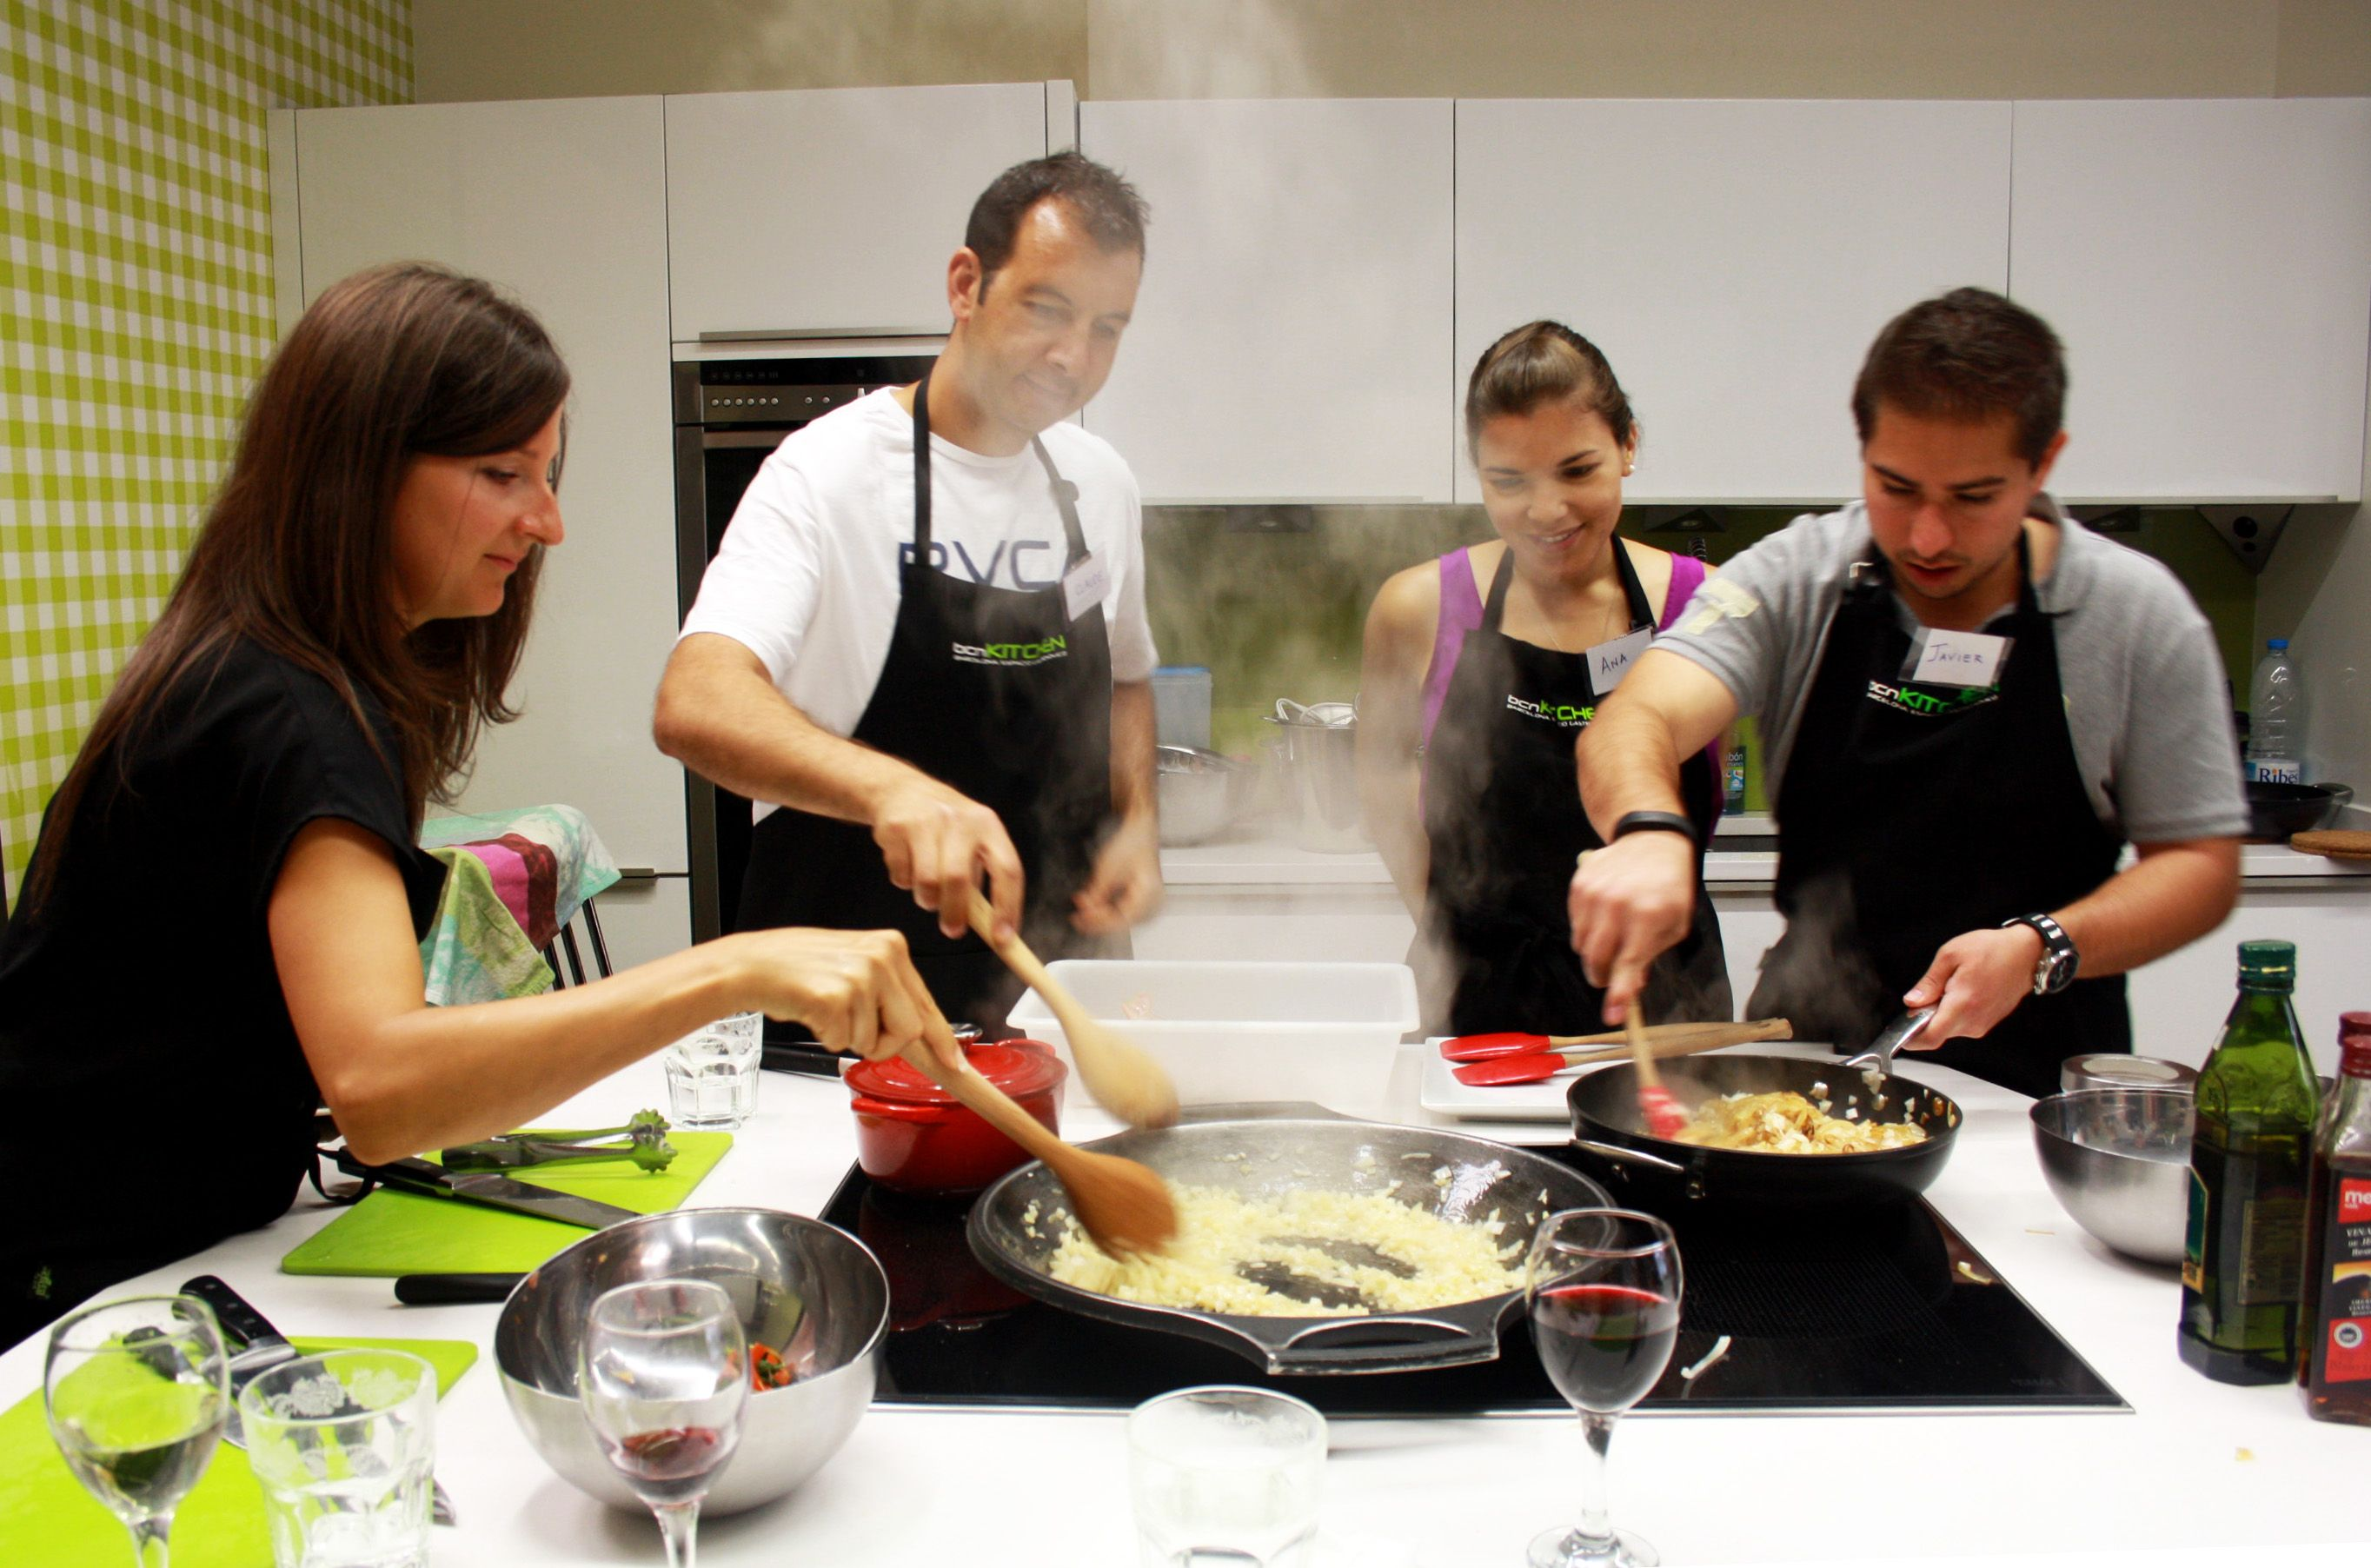 Gastronomic experience in bcnkitchencooking is one of